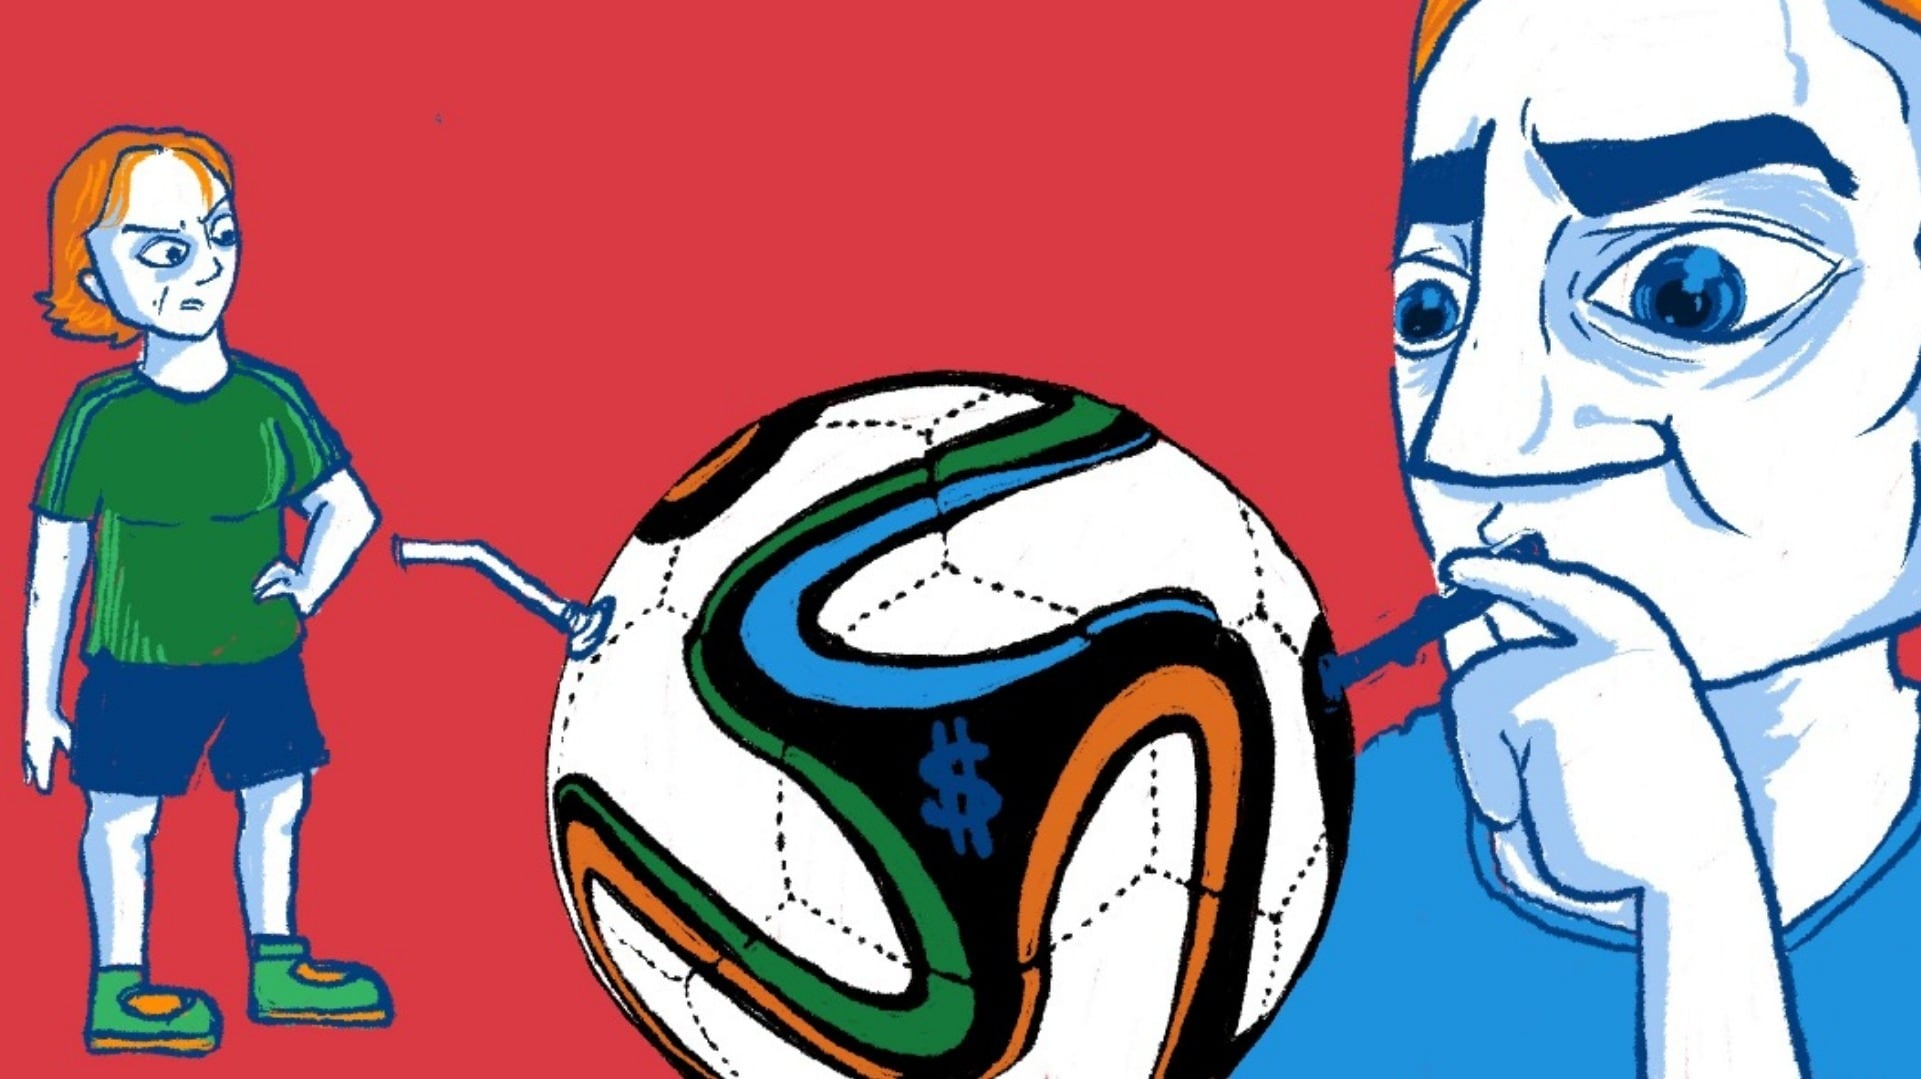 As 2019 FIFA Women's World Cup begins, a look at female footballers' fight for gender equality - Firstpost